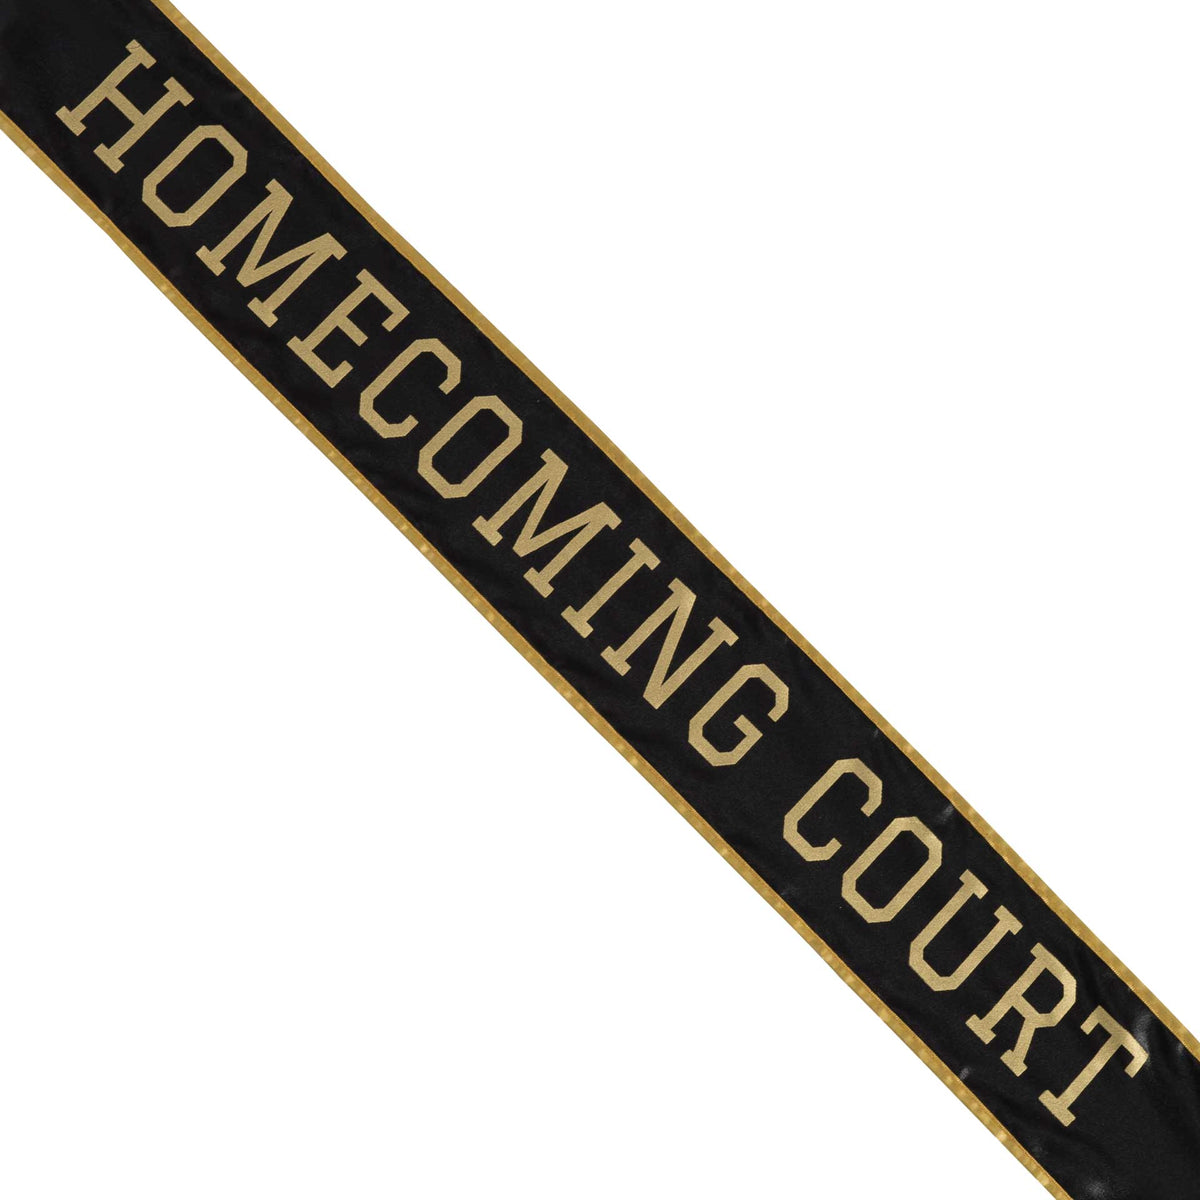 Black & Gold School Color Homecoming Court Sash